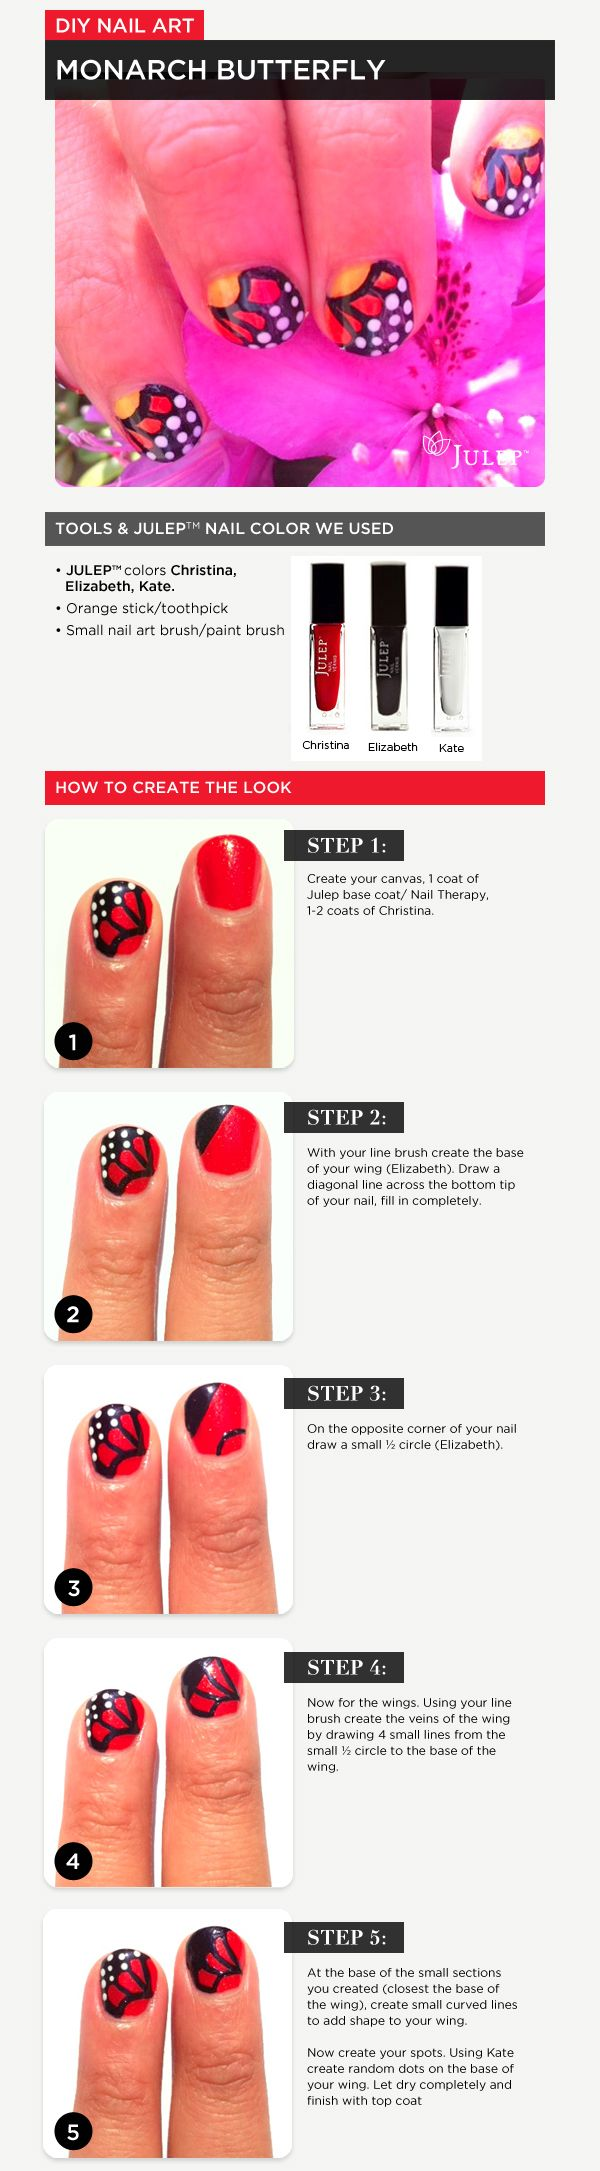 Paint a monarch butterfly on your fingernails.